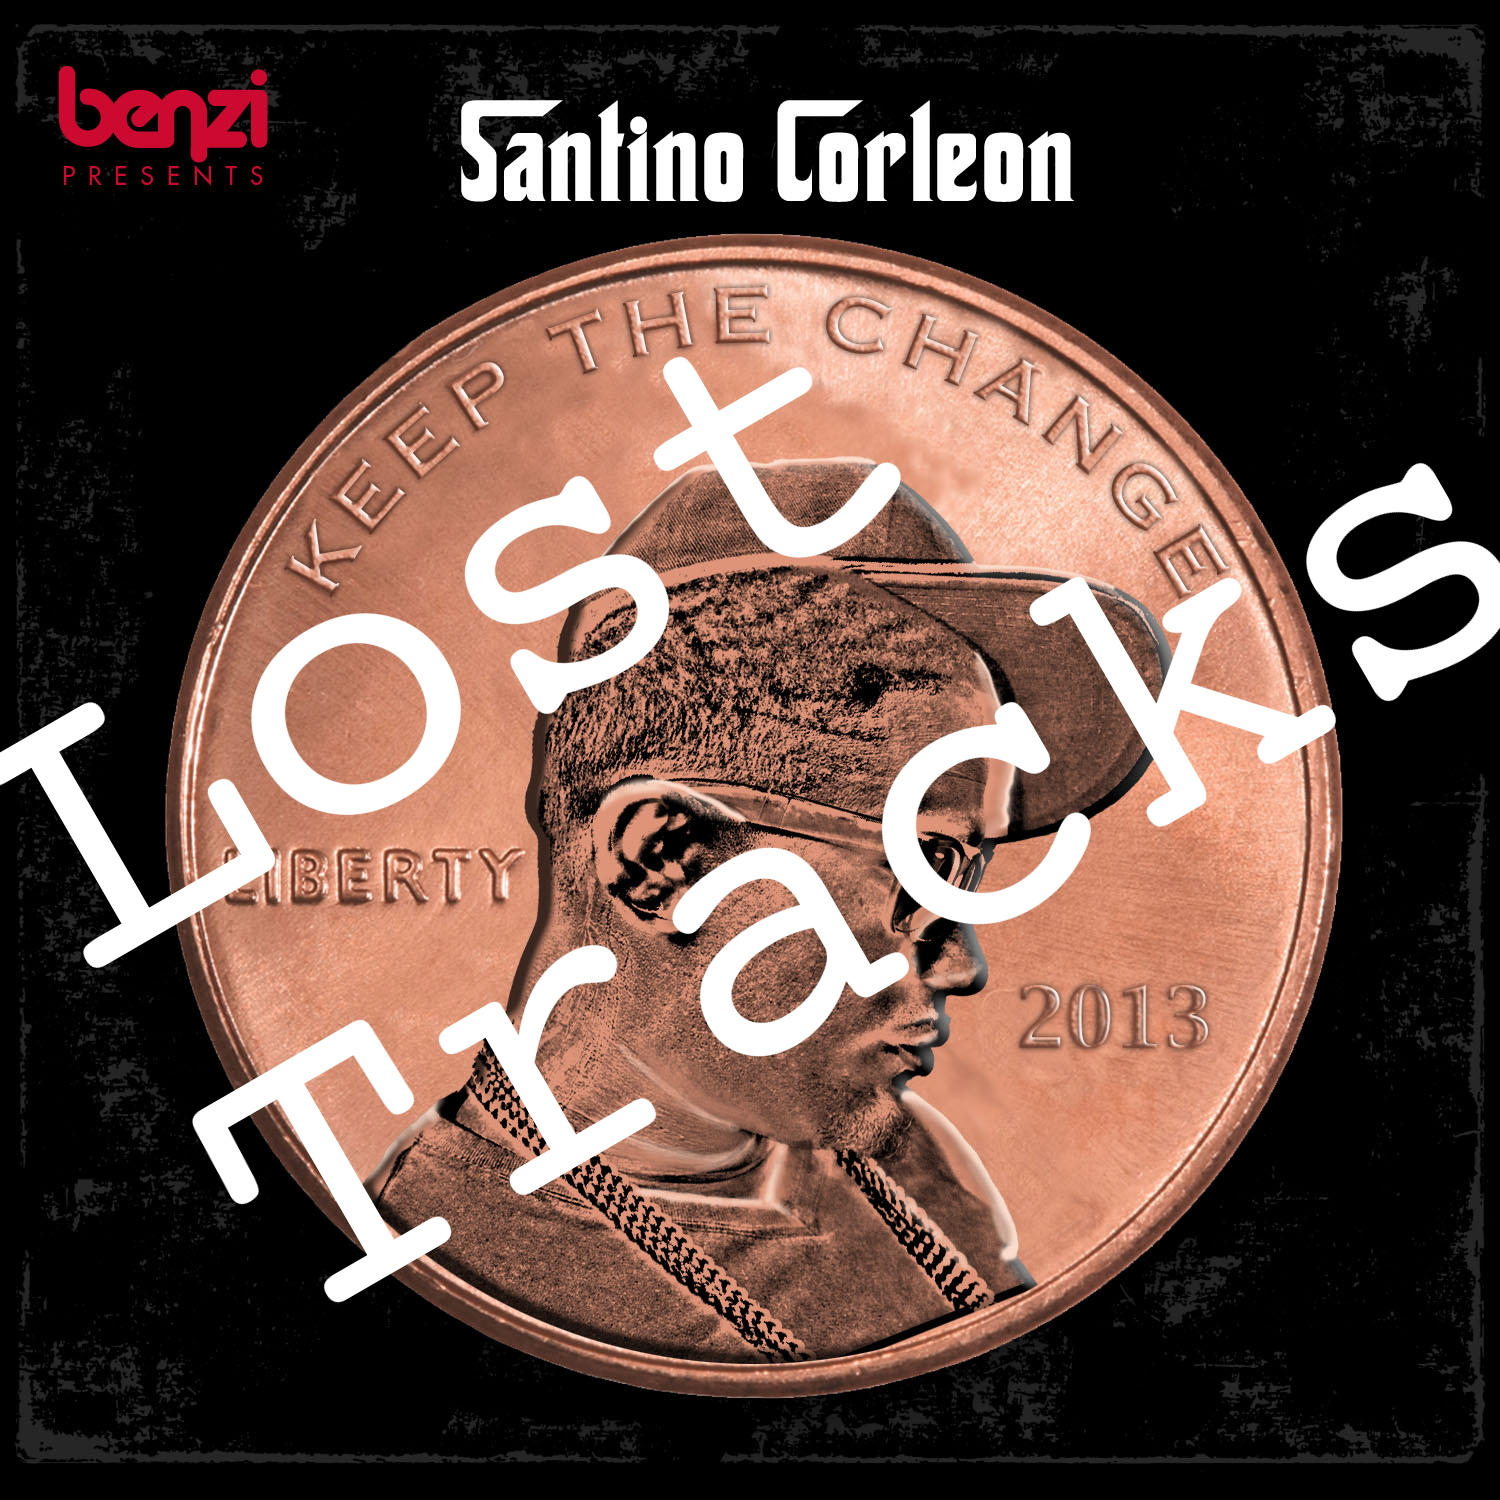 LostTracks